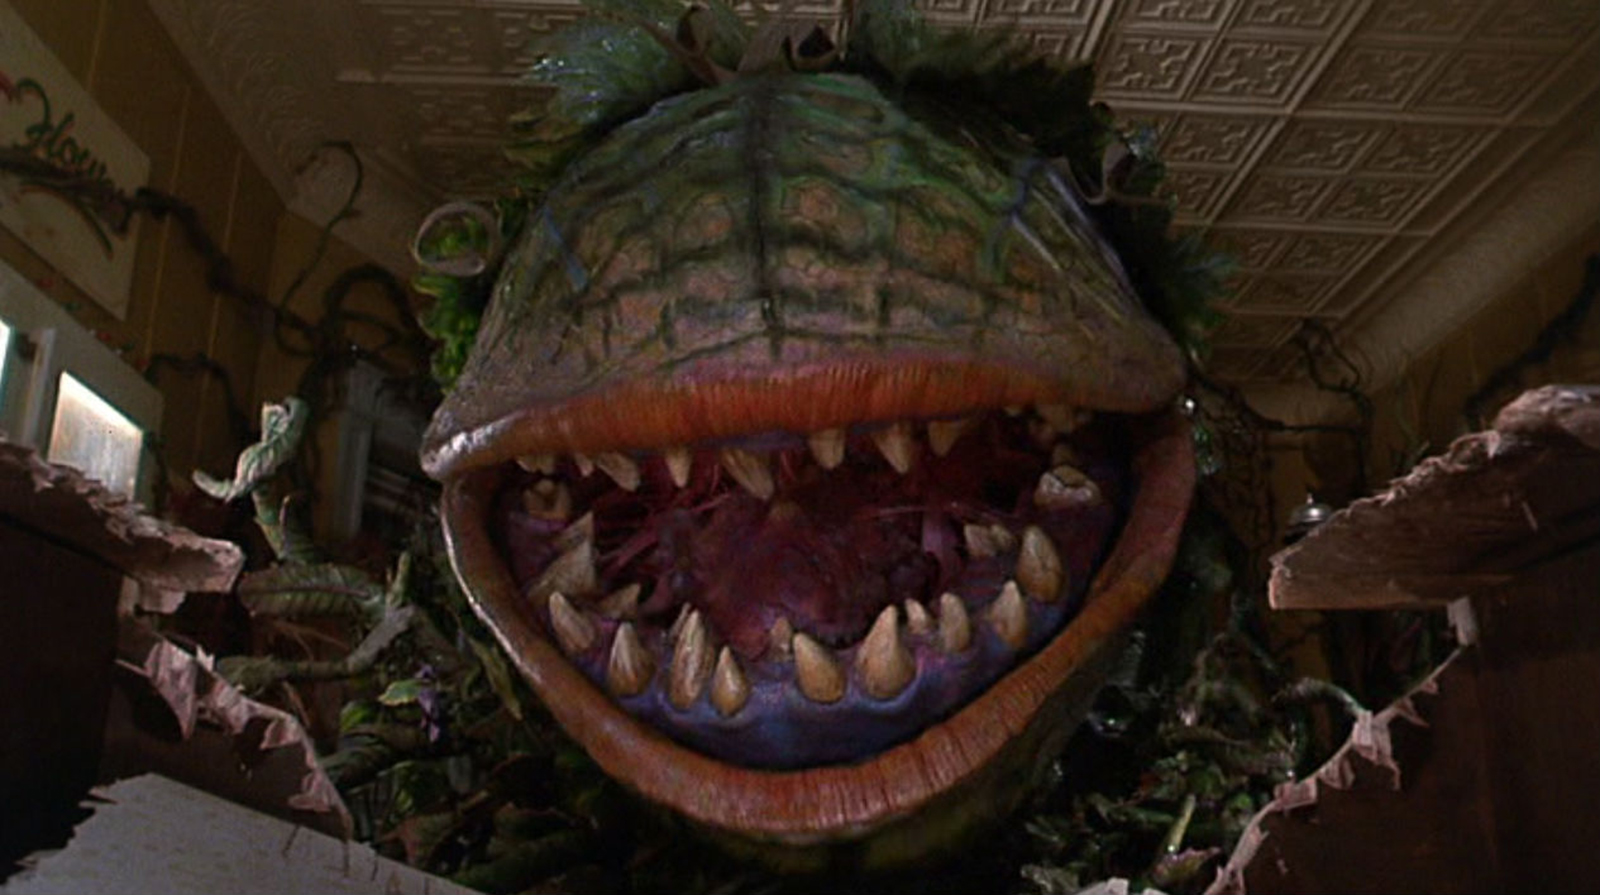 Levi Stubbs in Little Shop of Horrors (1986)